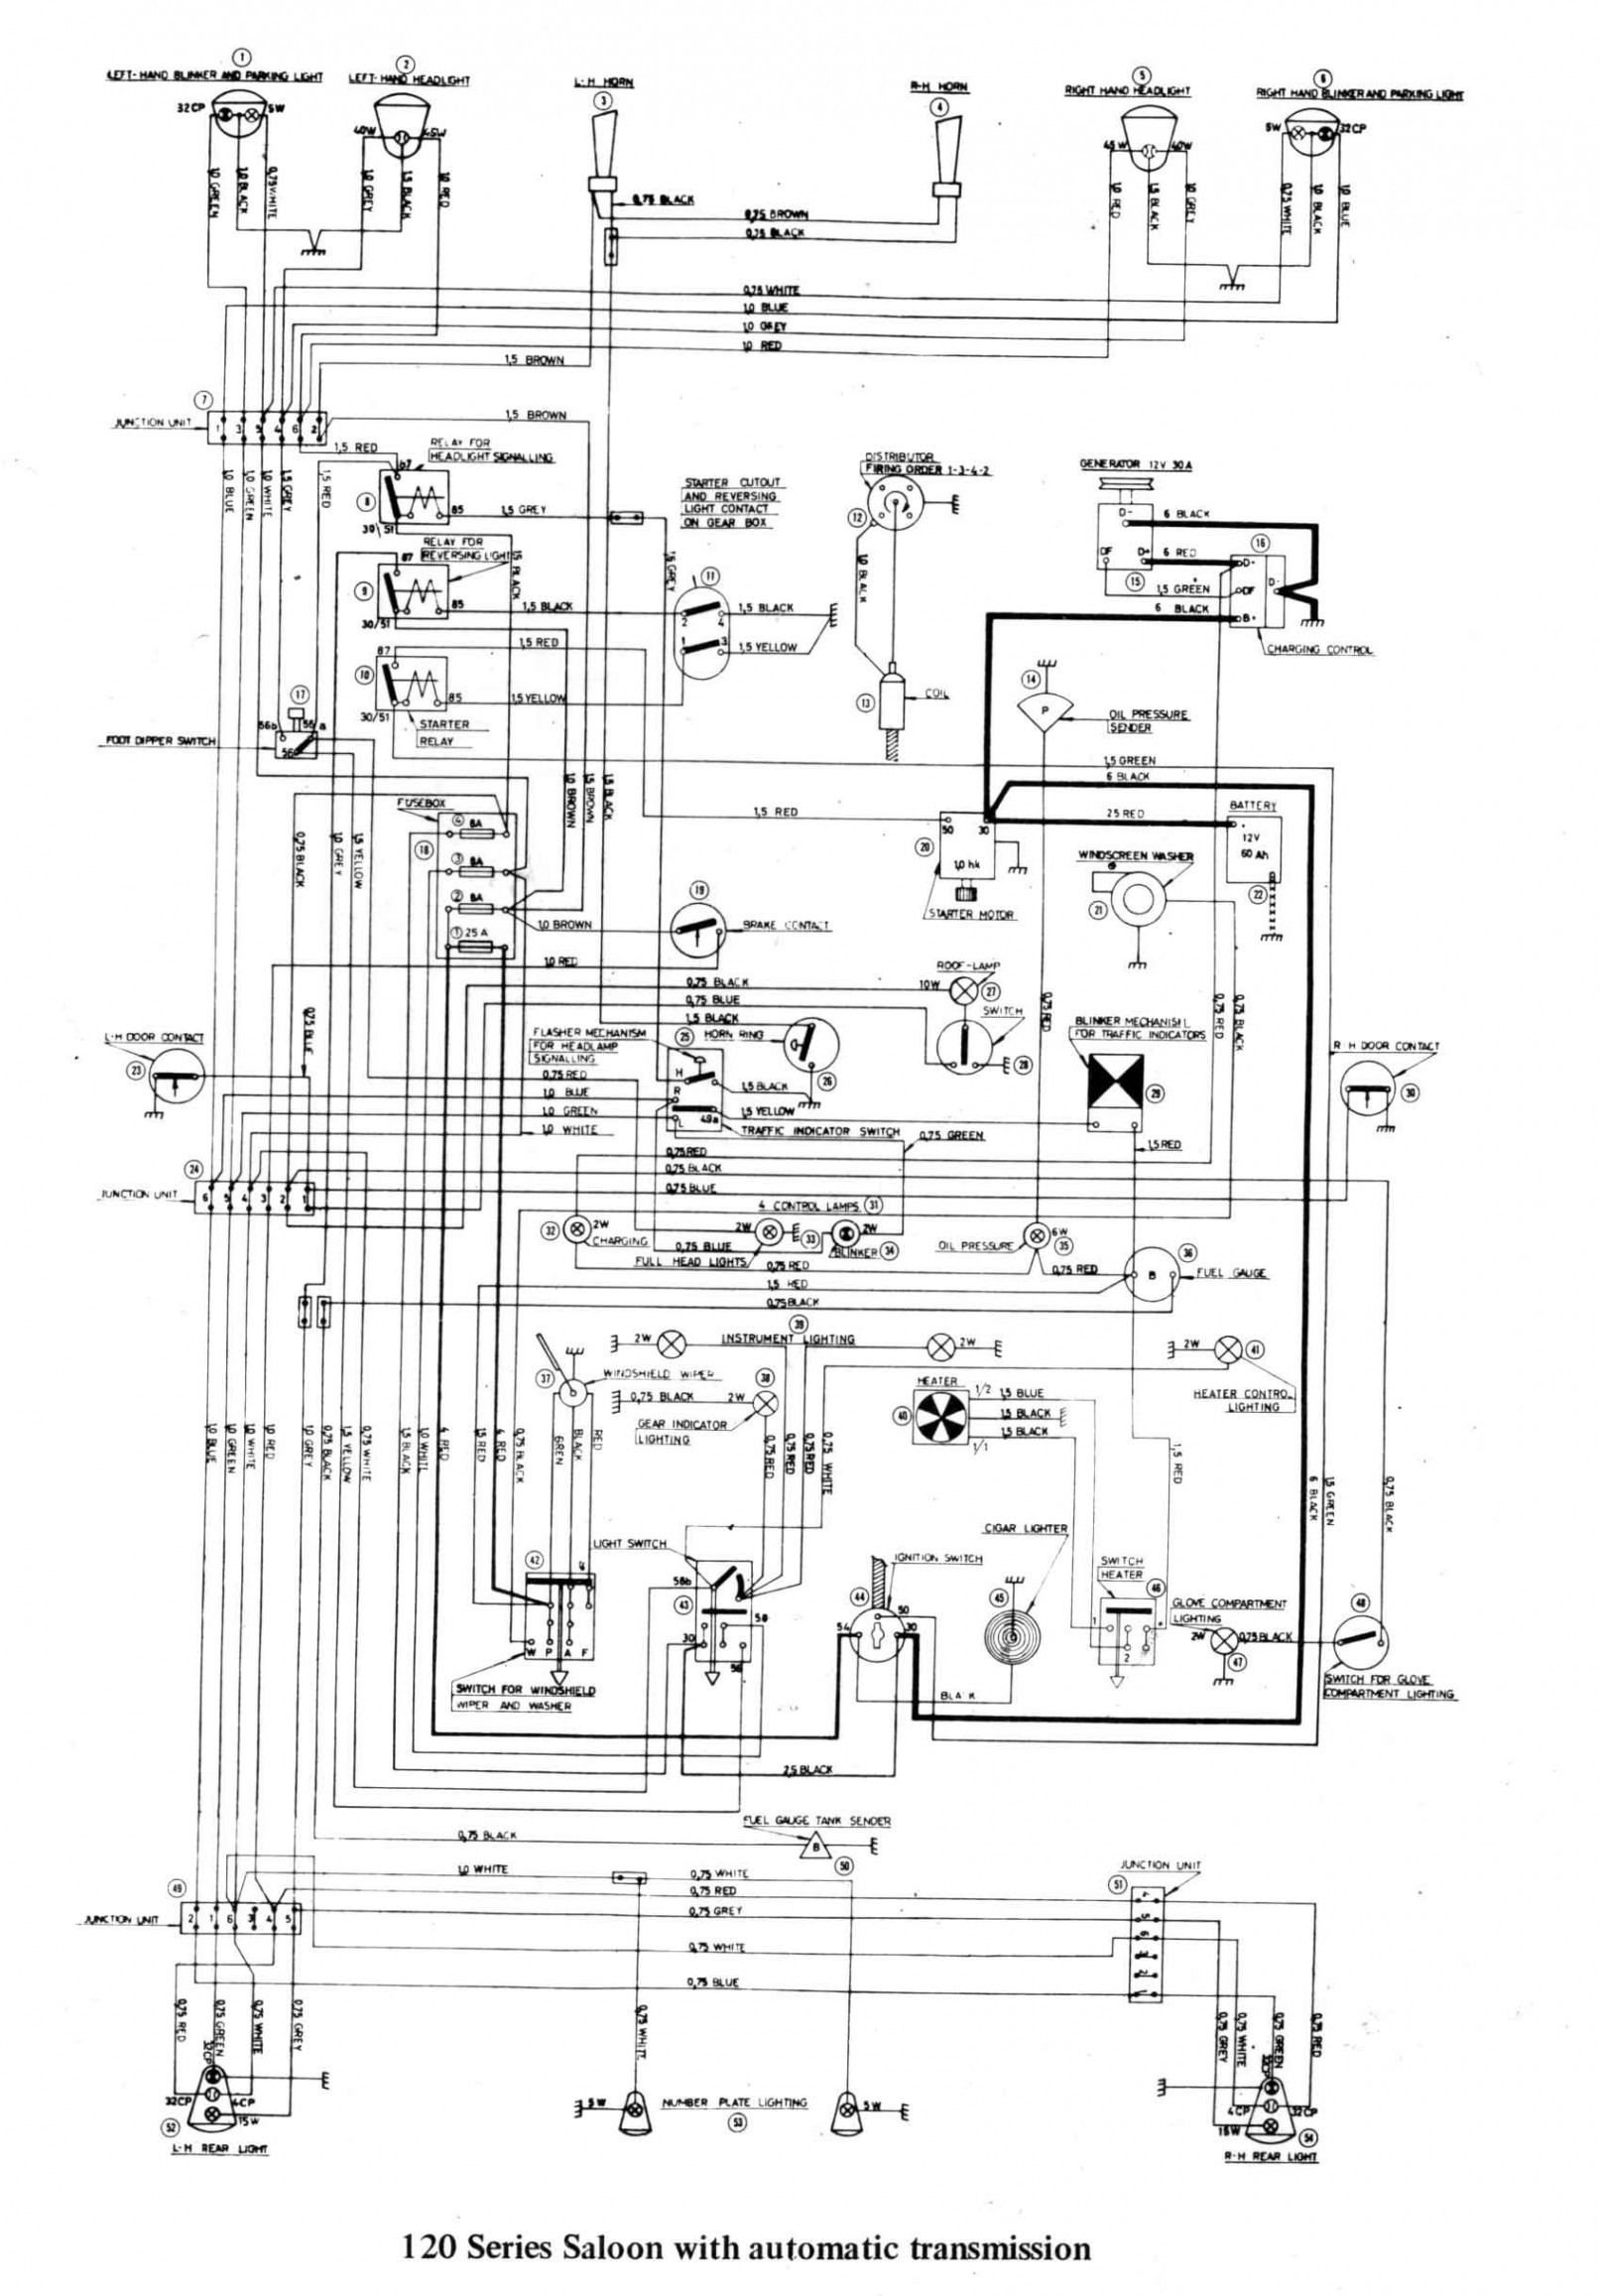 Auto Parts Diagram toyota toyota Parts Diagram – Auto Parts Diagram Manual ] Saab Plug M16x1 5 Of Auto Parts Diagram toyota Car Engine Diagram – Car Diagram Unique Car Parts and Diagrams